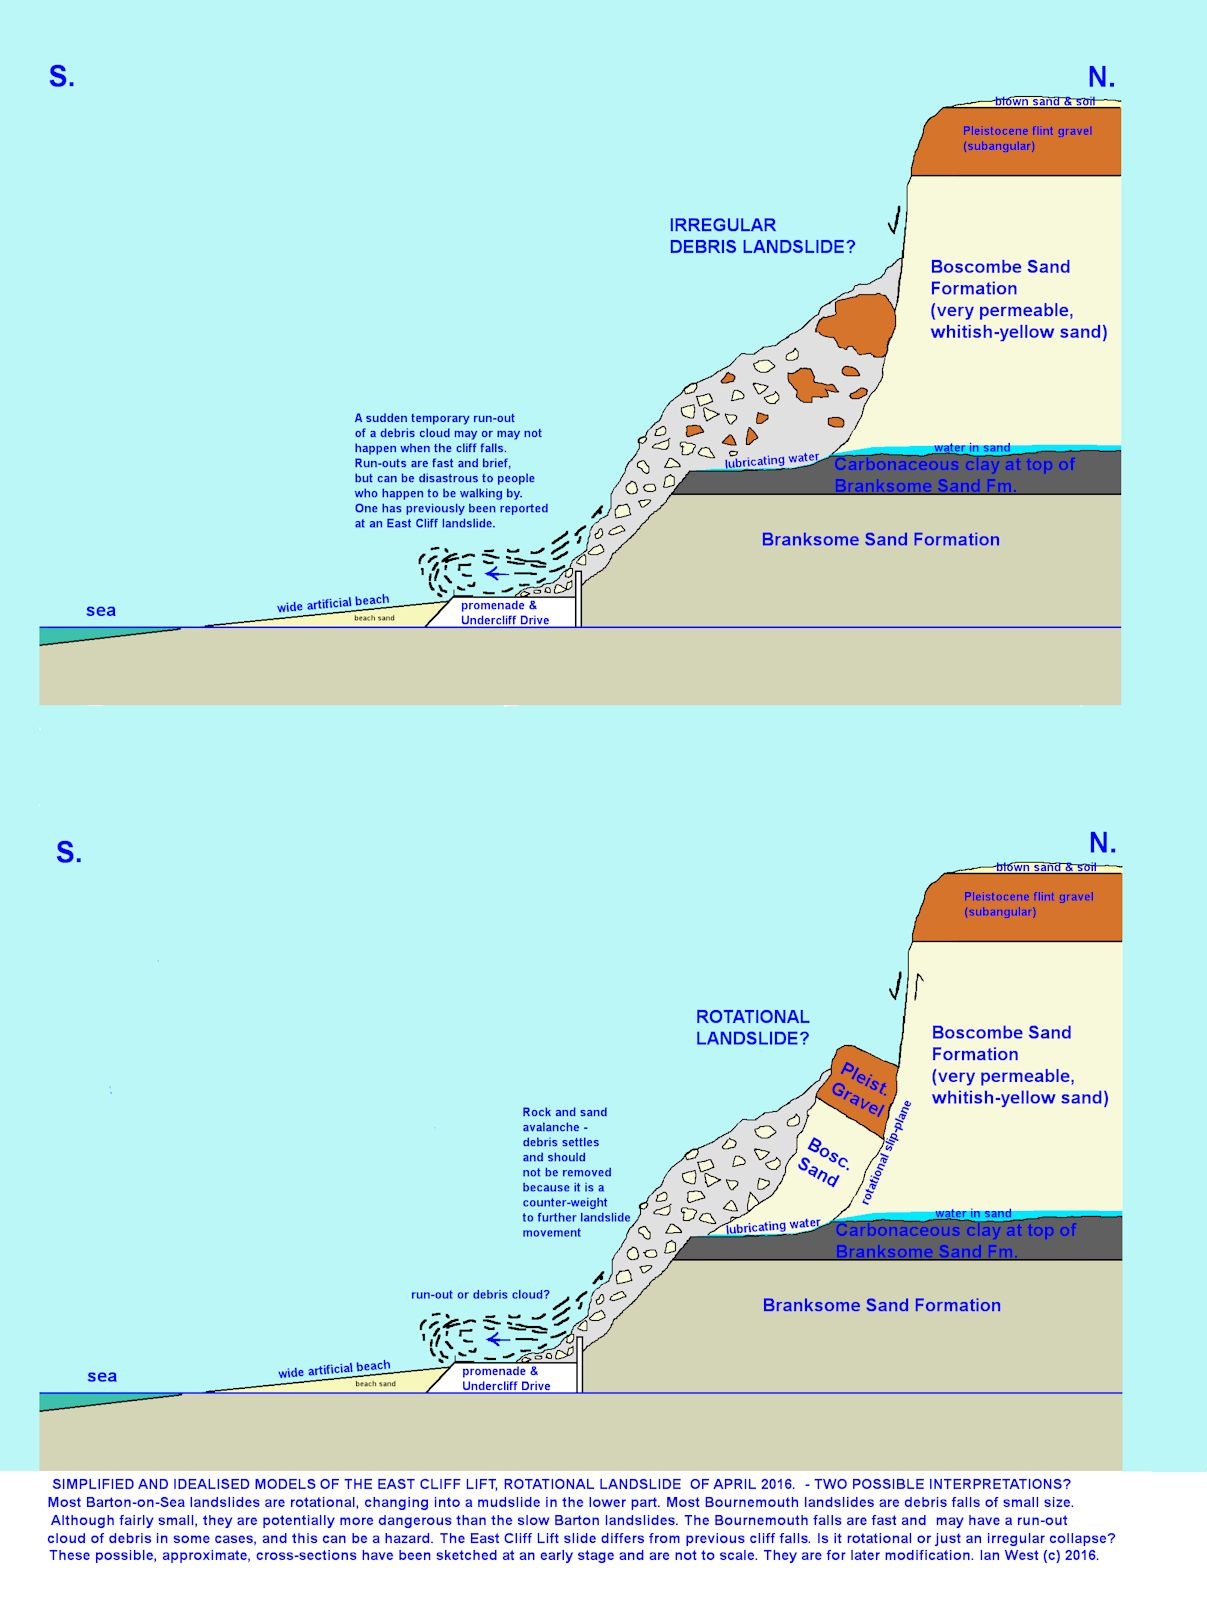 A simple, cross-sectional diagram, not true to scale, showing the general features of landslide at the East Cliff Lift, Bournemouth, Dorset, in April 2016